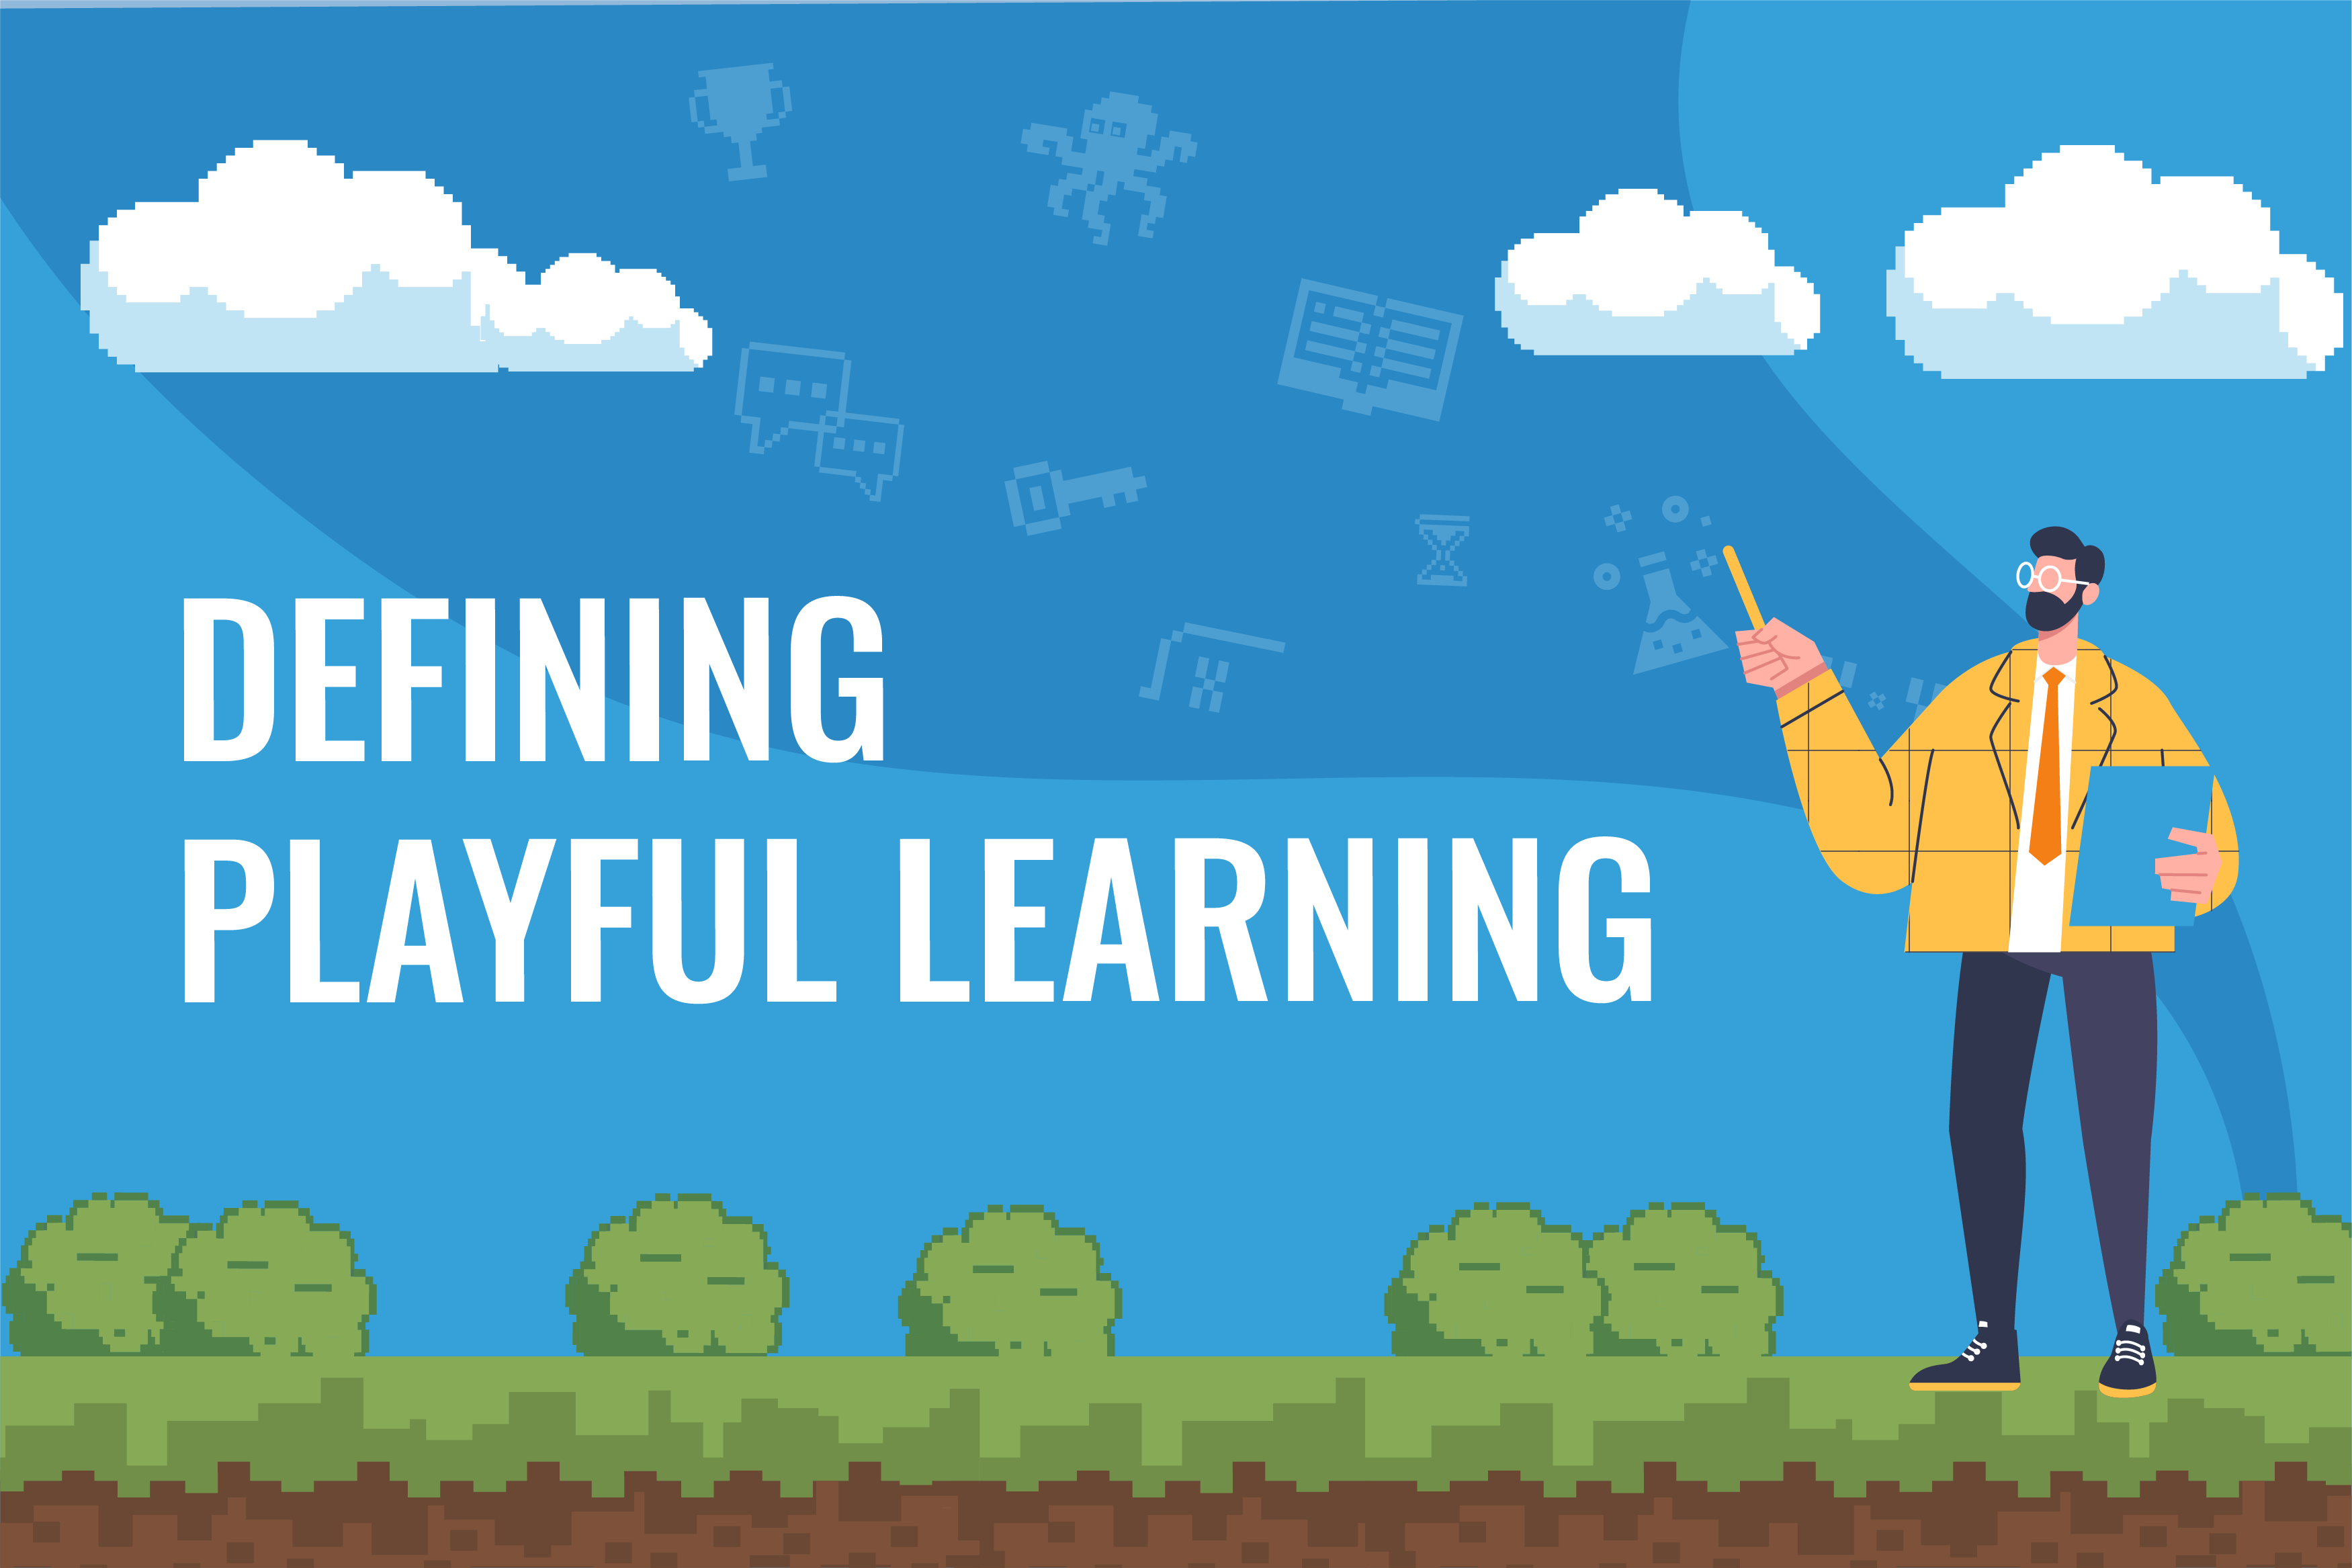 Defining Playful Learning